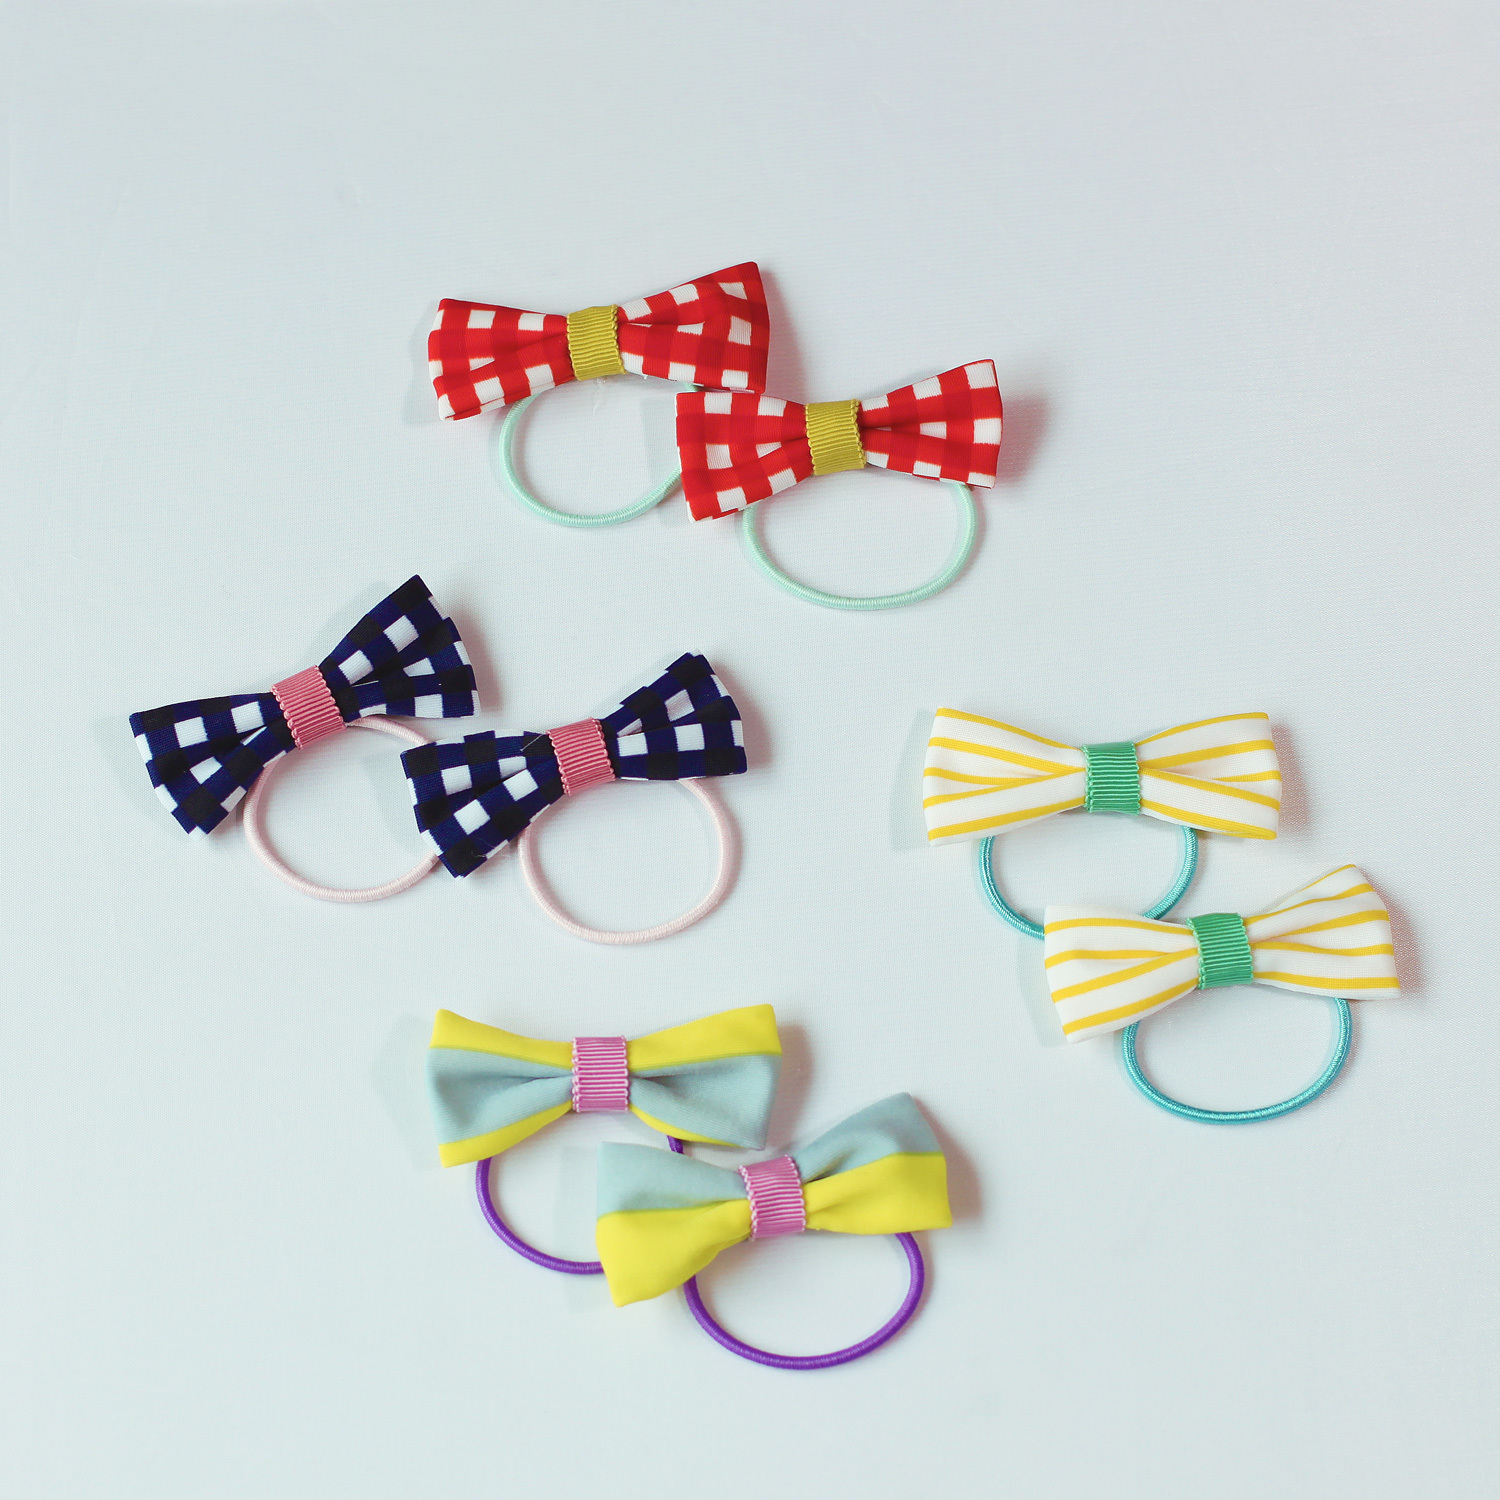 wacco×Neige accessories. リボンヘアゴム2個セット